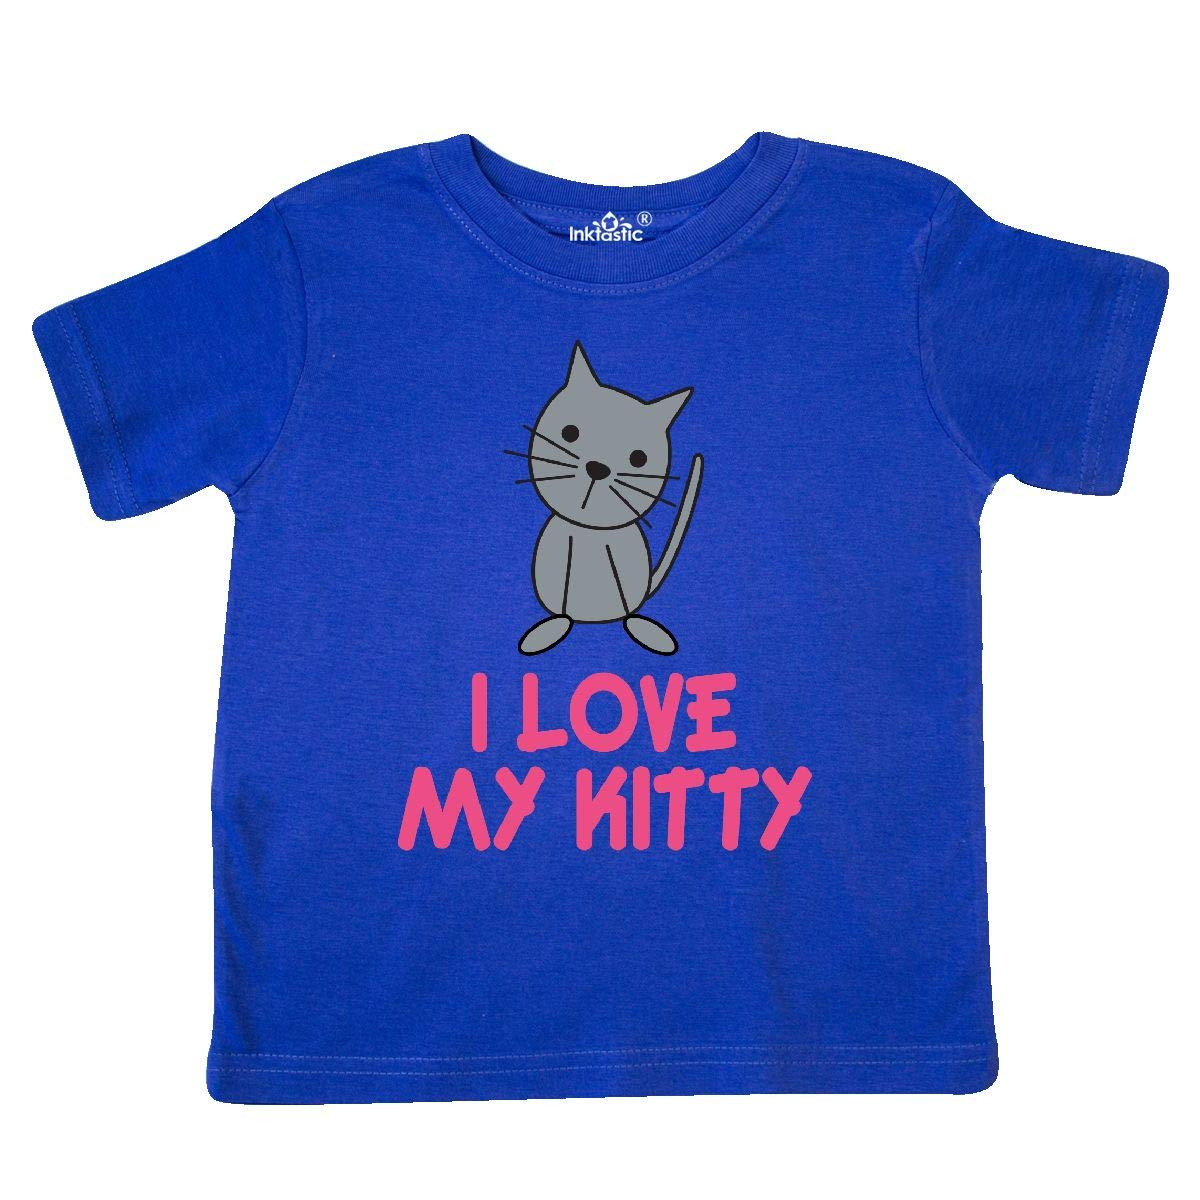 inktastic Cat Lover I Love My Kitty Toddler T-Shirt